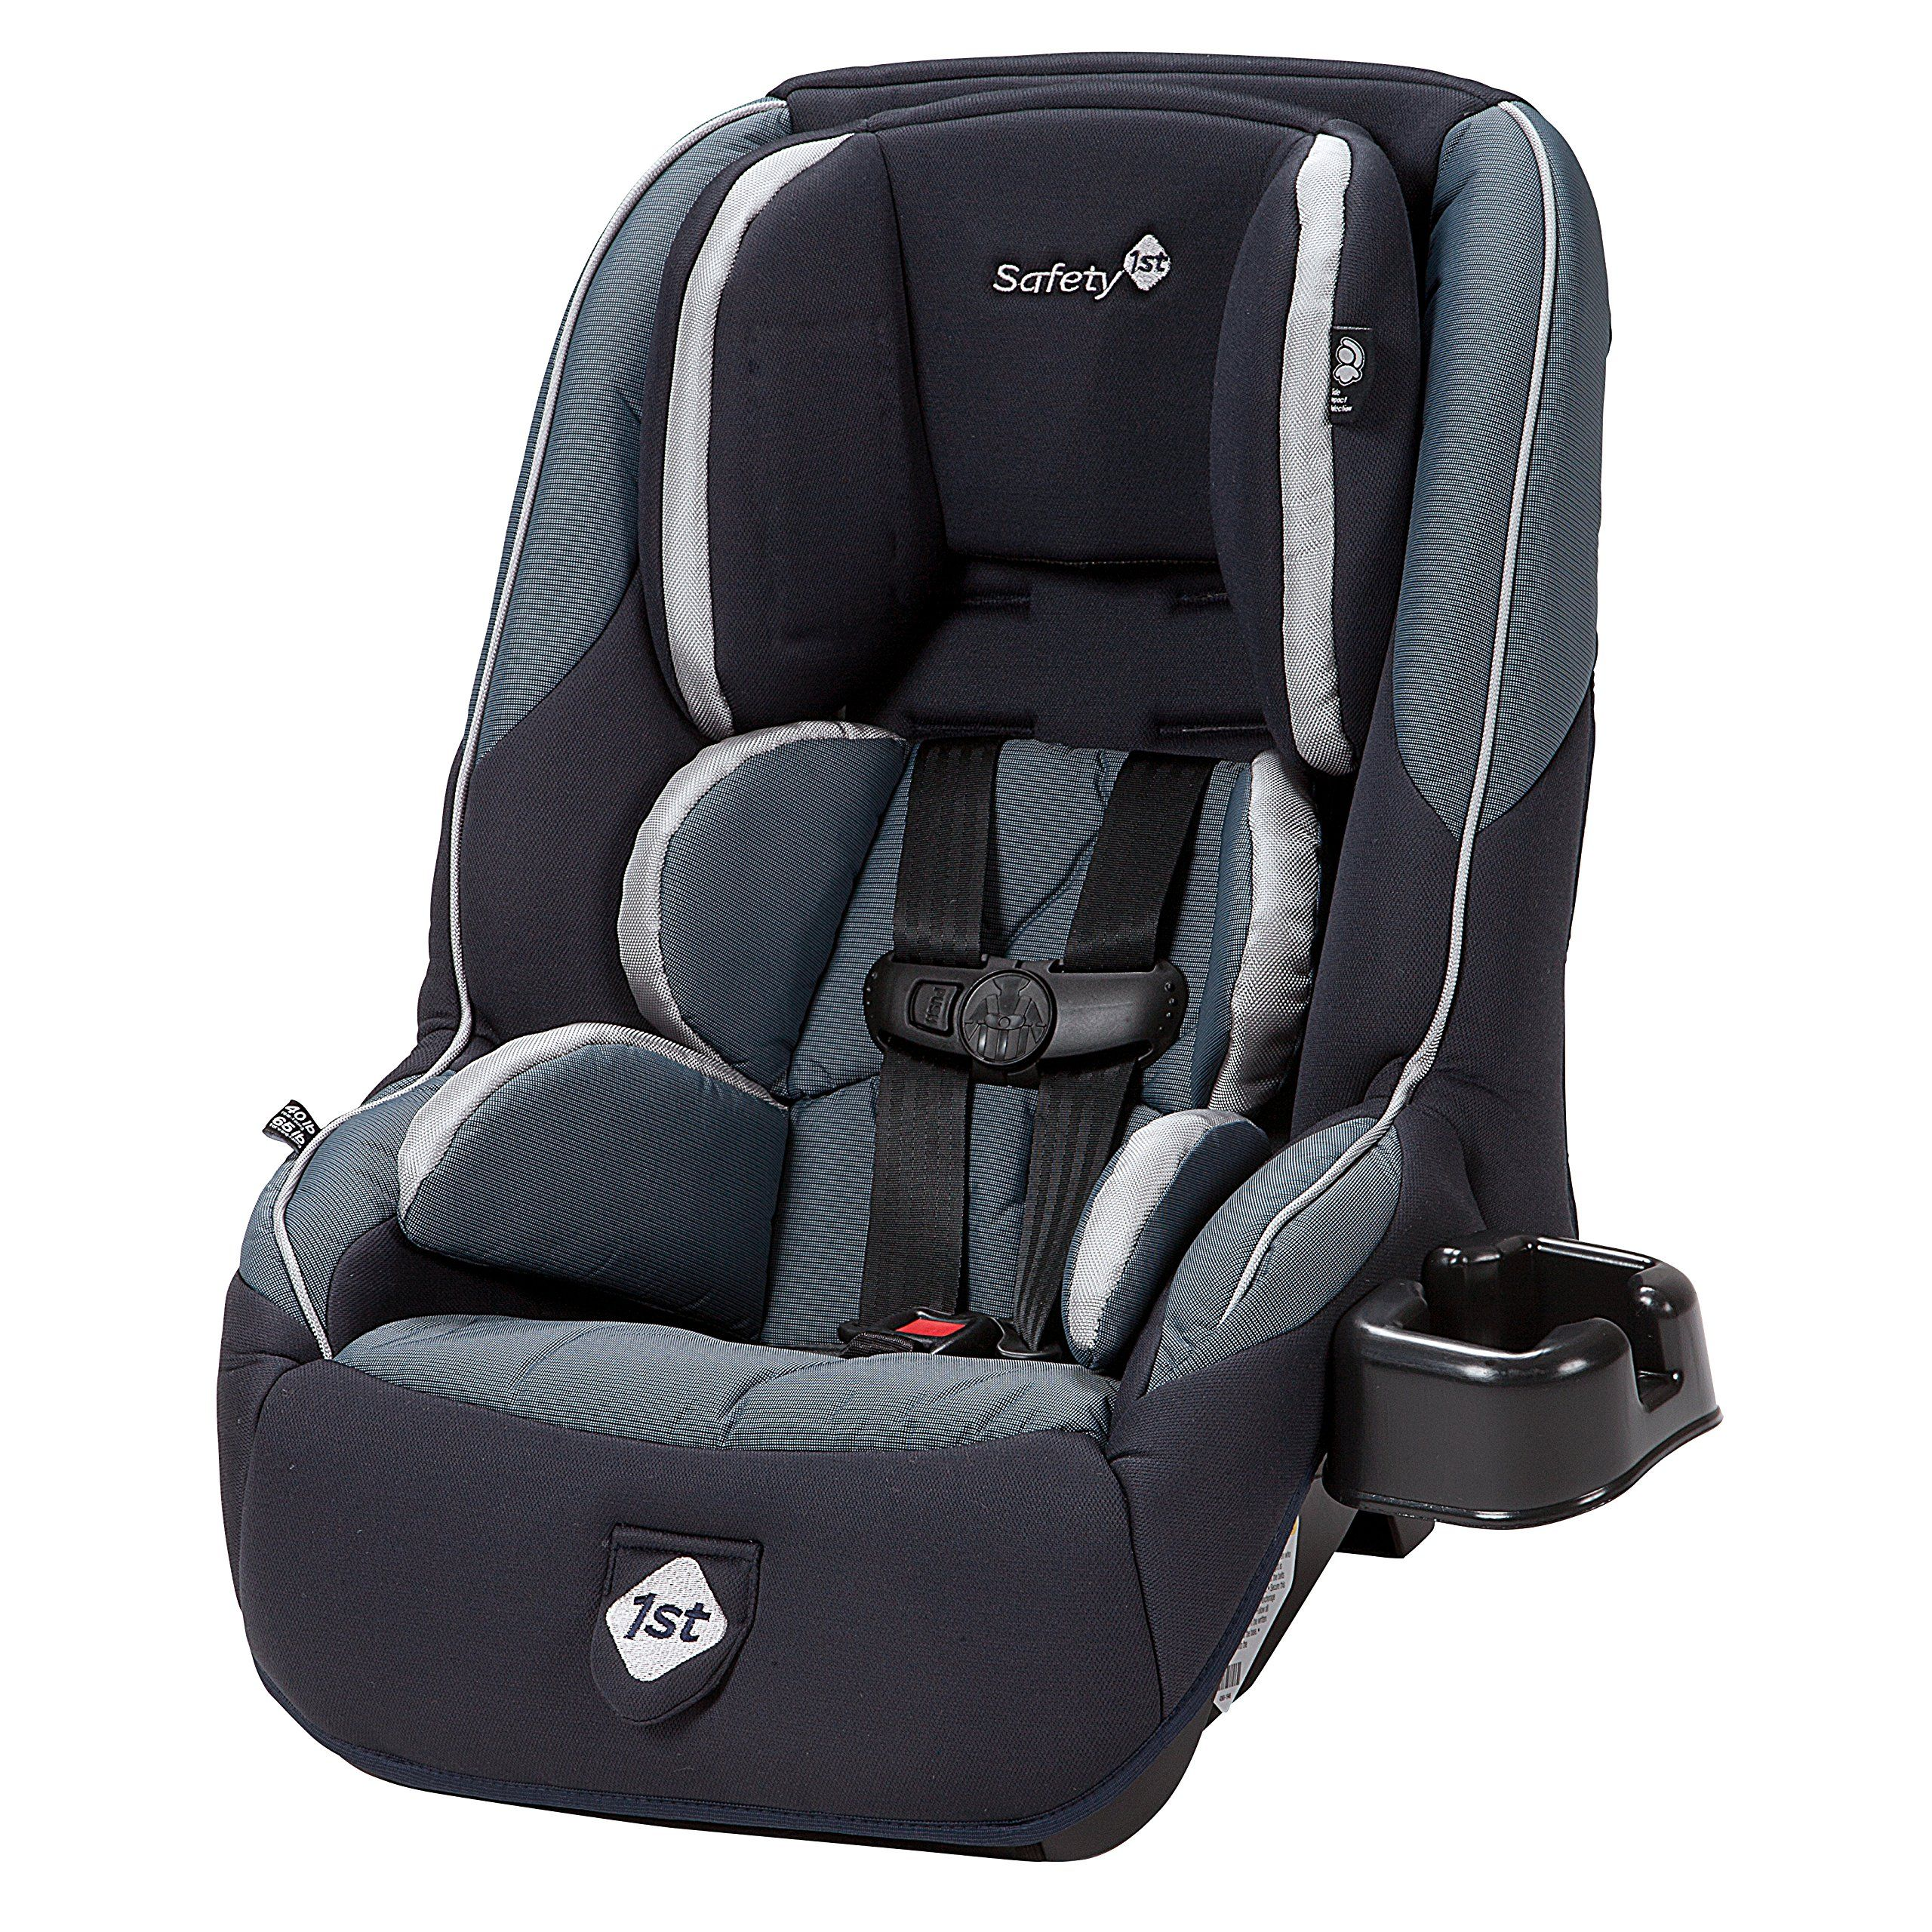 Safety 1st Guide 65 Convertible Car Seat Seaport 14 Lbs Weight 5 40 Lb Or Rear Facing 22 43 Forward